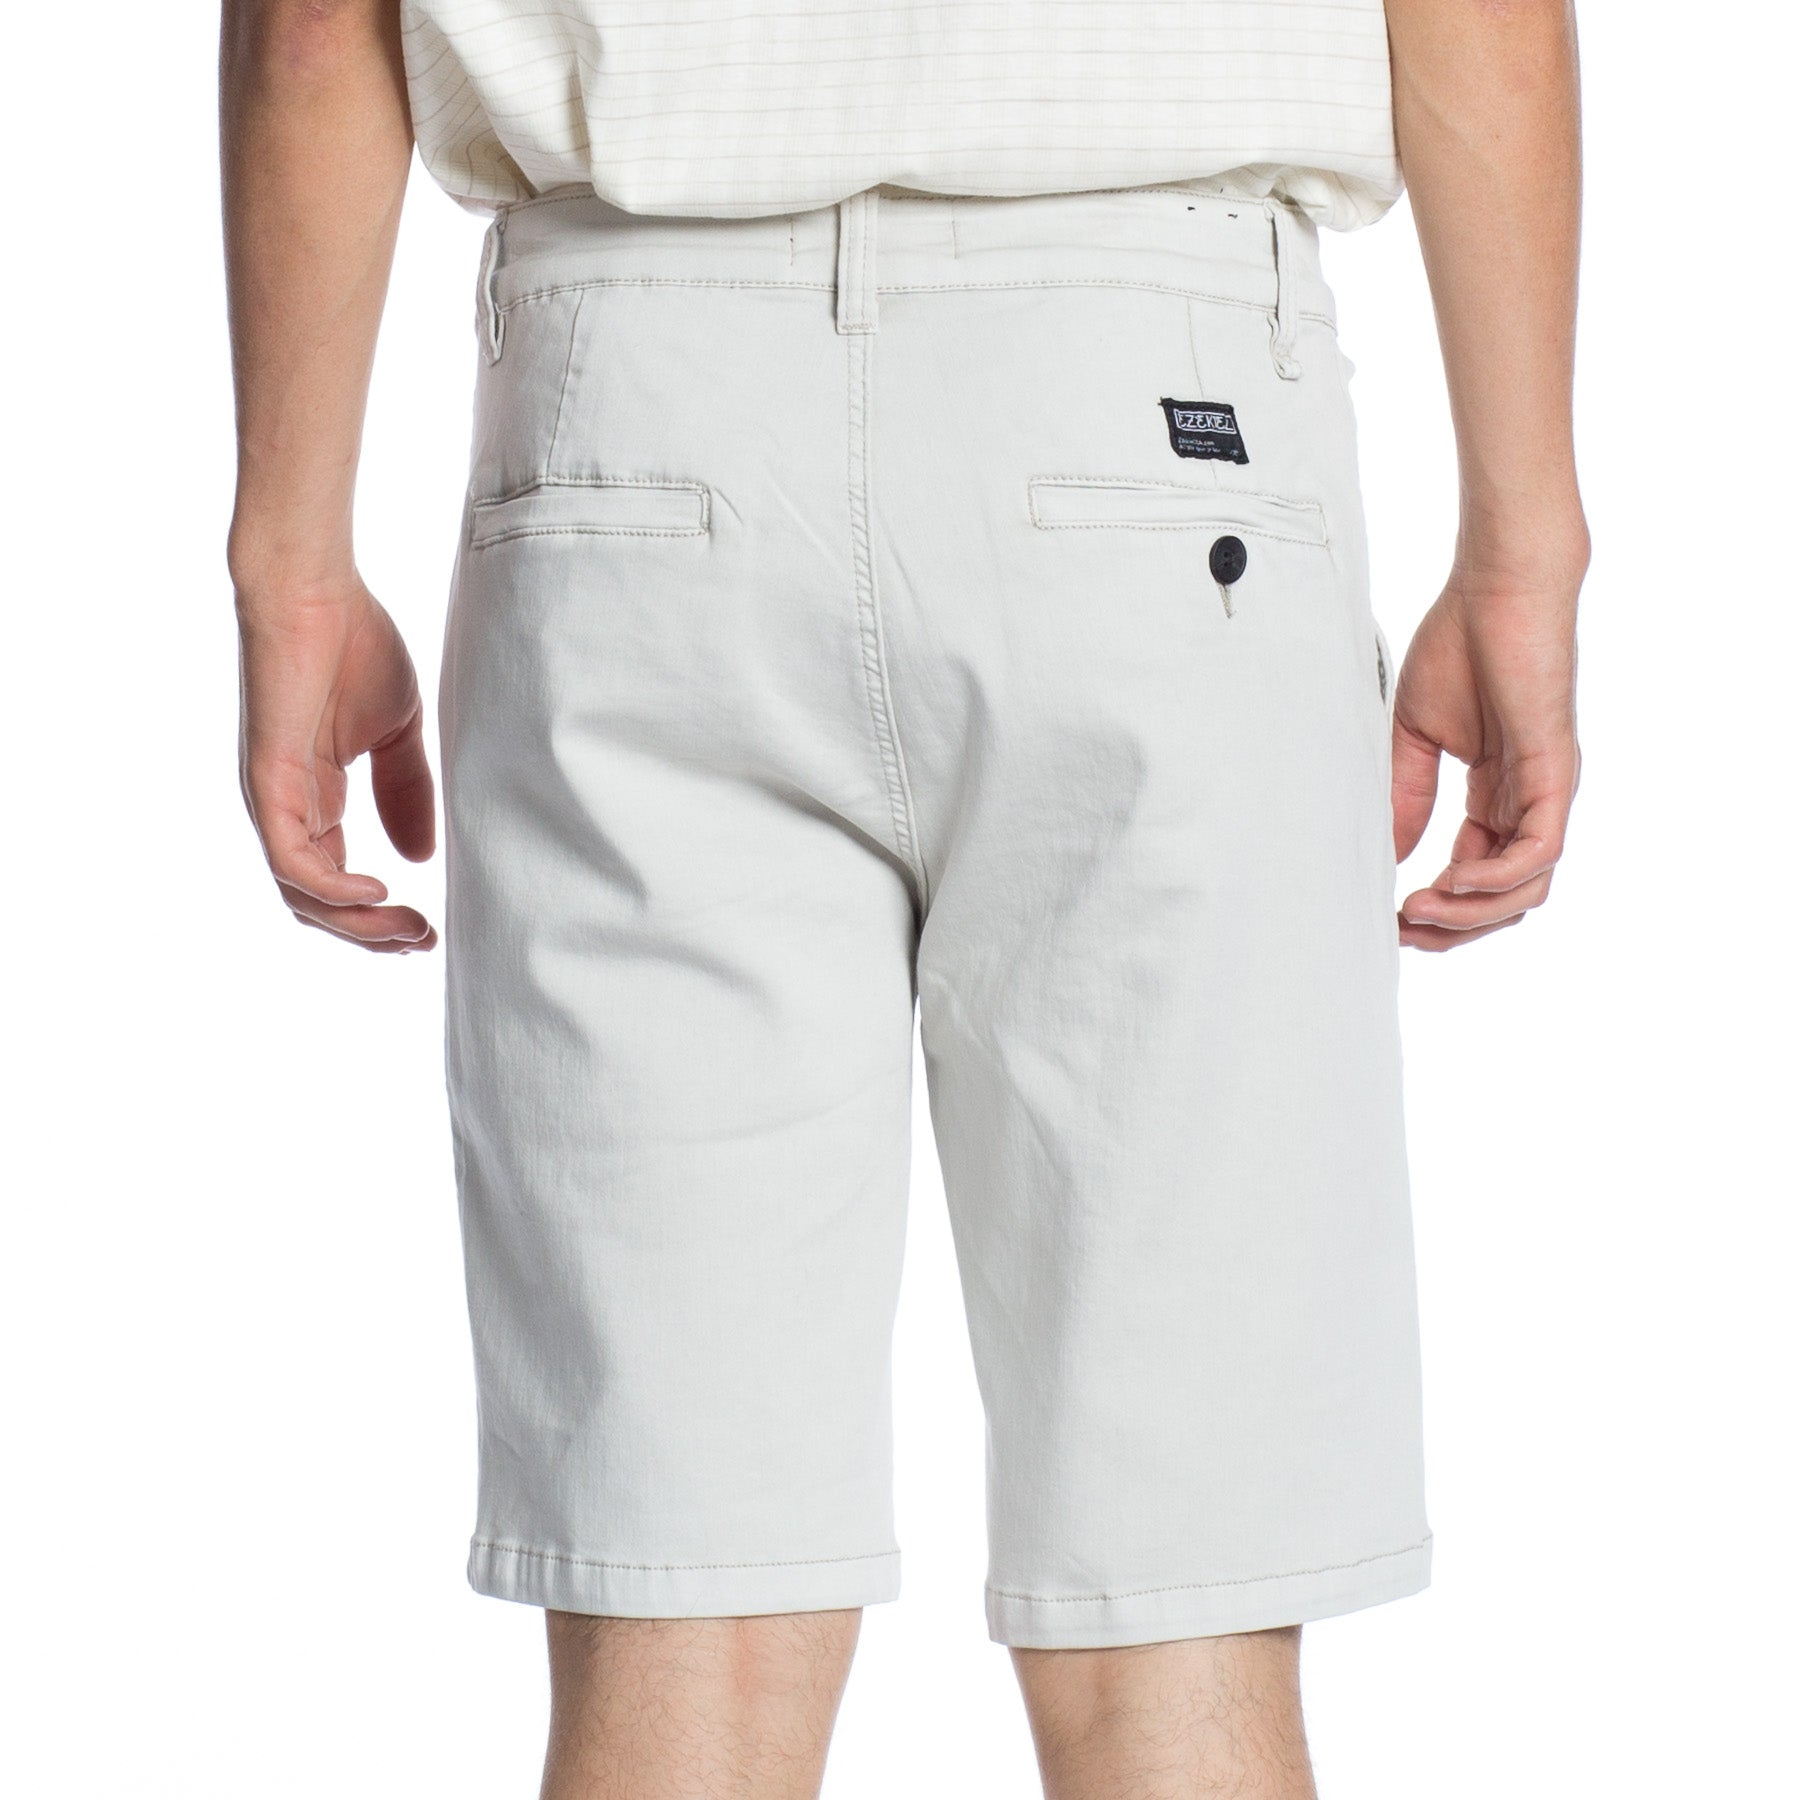 Bounce Short - Porcelain - Ezekiel Clothing